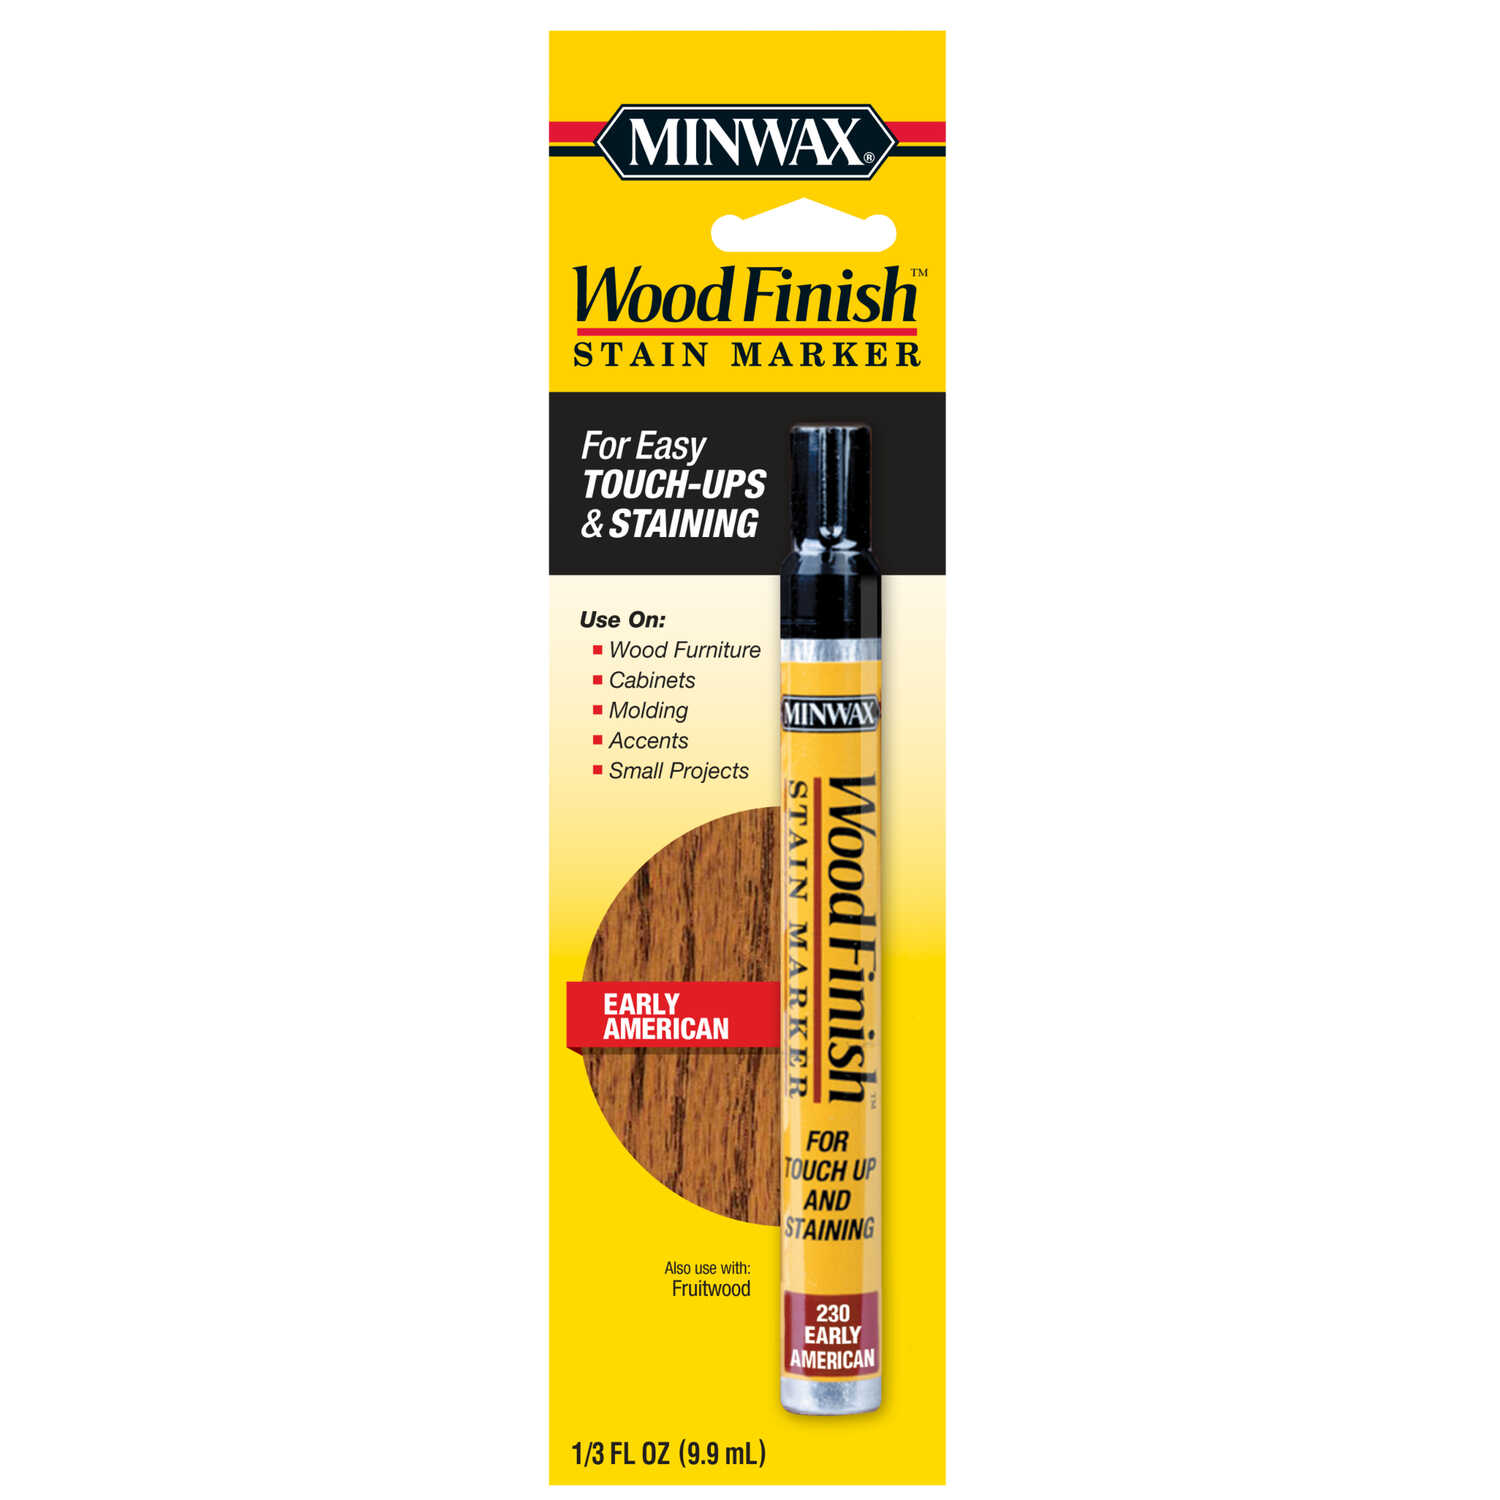 Minwax  Wood Finish  Semi-Transparent  Early American  Oil-Based  Stain Marker  0.33 oz.